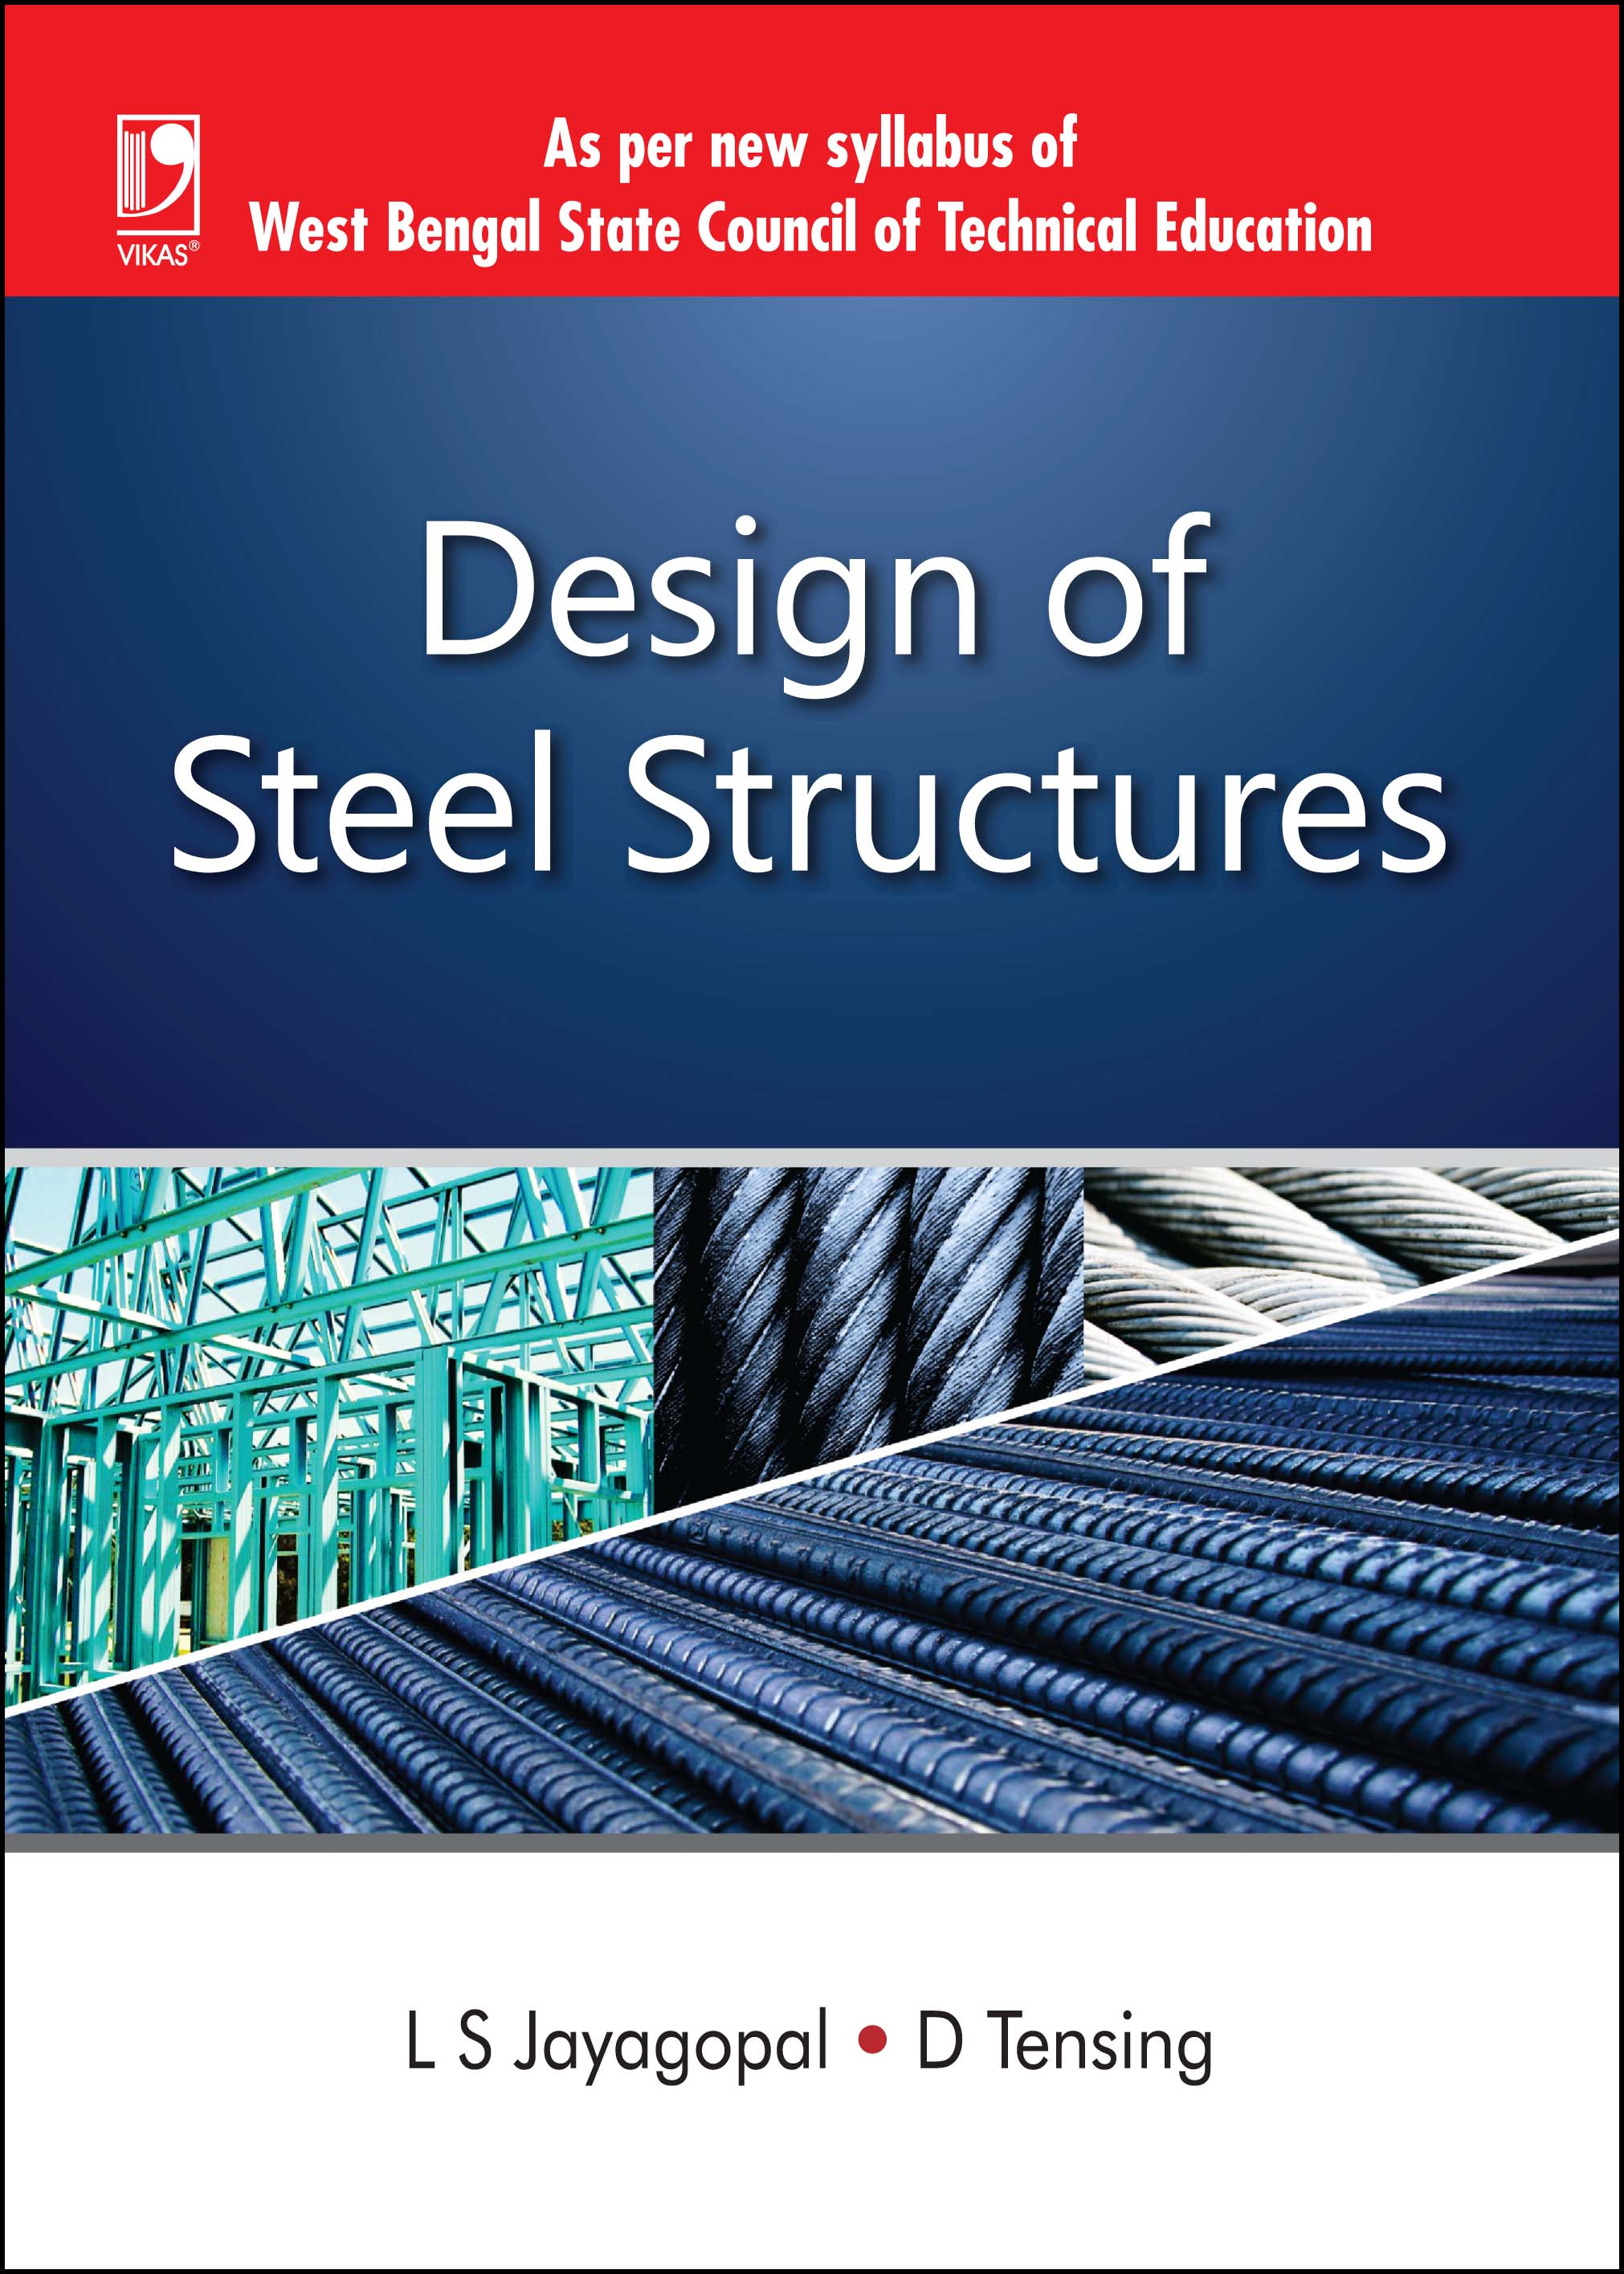 DESIGN OF STEEL STRUCTURES (FOR WBSCTE)